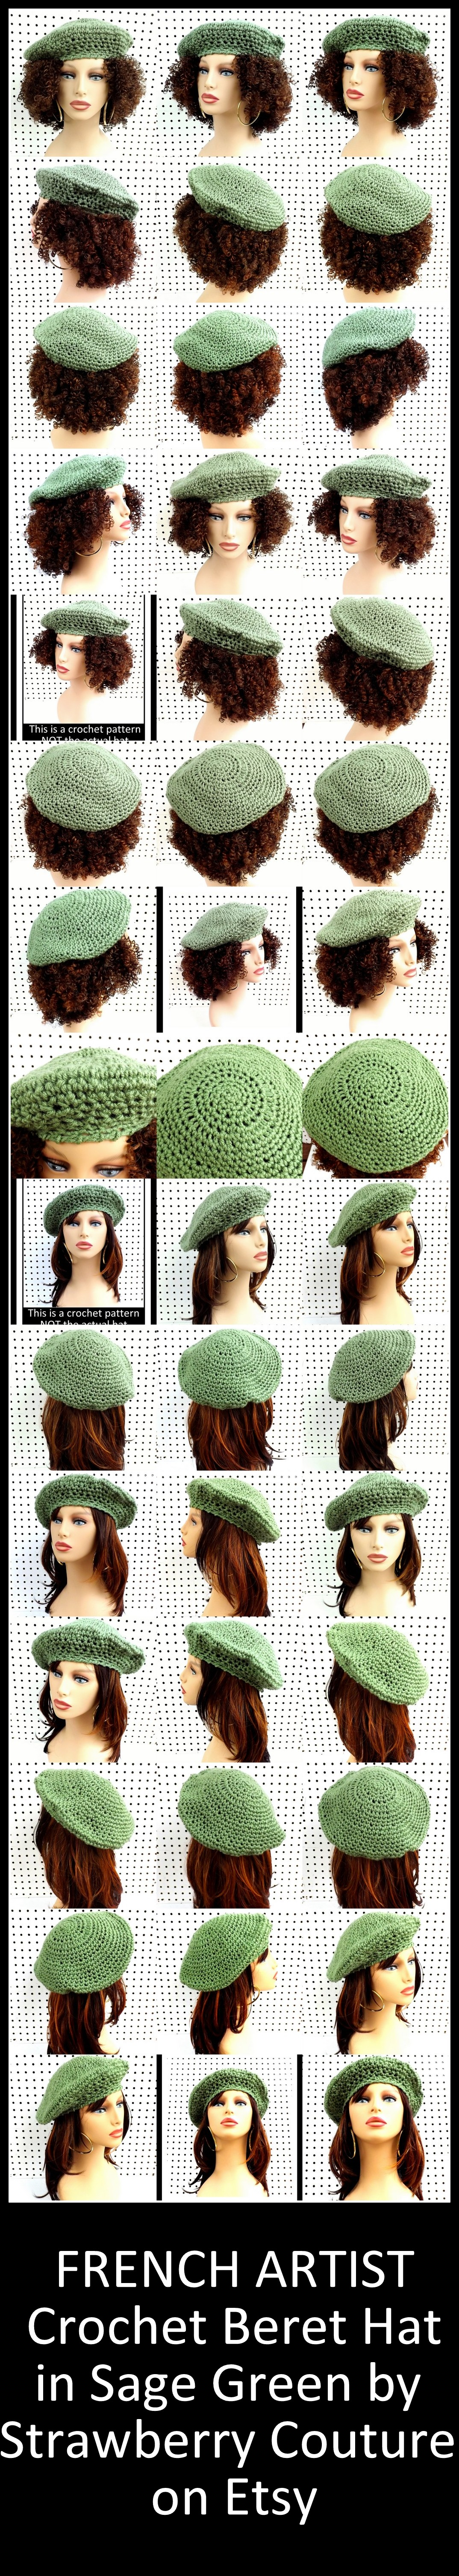 https://www.etsy.com/shop/strawberrycouture/search?search_query=french+artist&order=date_desc&view_type=gallery&ref=shop_search FRENCH ARTIST Crochet Beret Hat in Sage Green $35.00 and Pattern $5.00 by StrawberryCouture on Etsy #berethat #crochethat #crochetpattern #berethat #berethatpattern #hatpattern #beretpattern #etsy #etsyshop #etsygifts #shopping #DIY #crafts